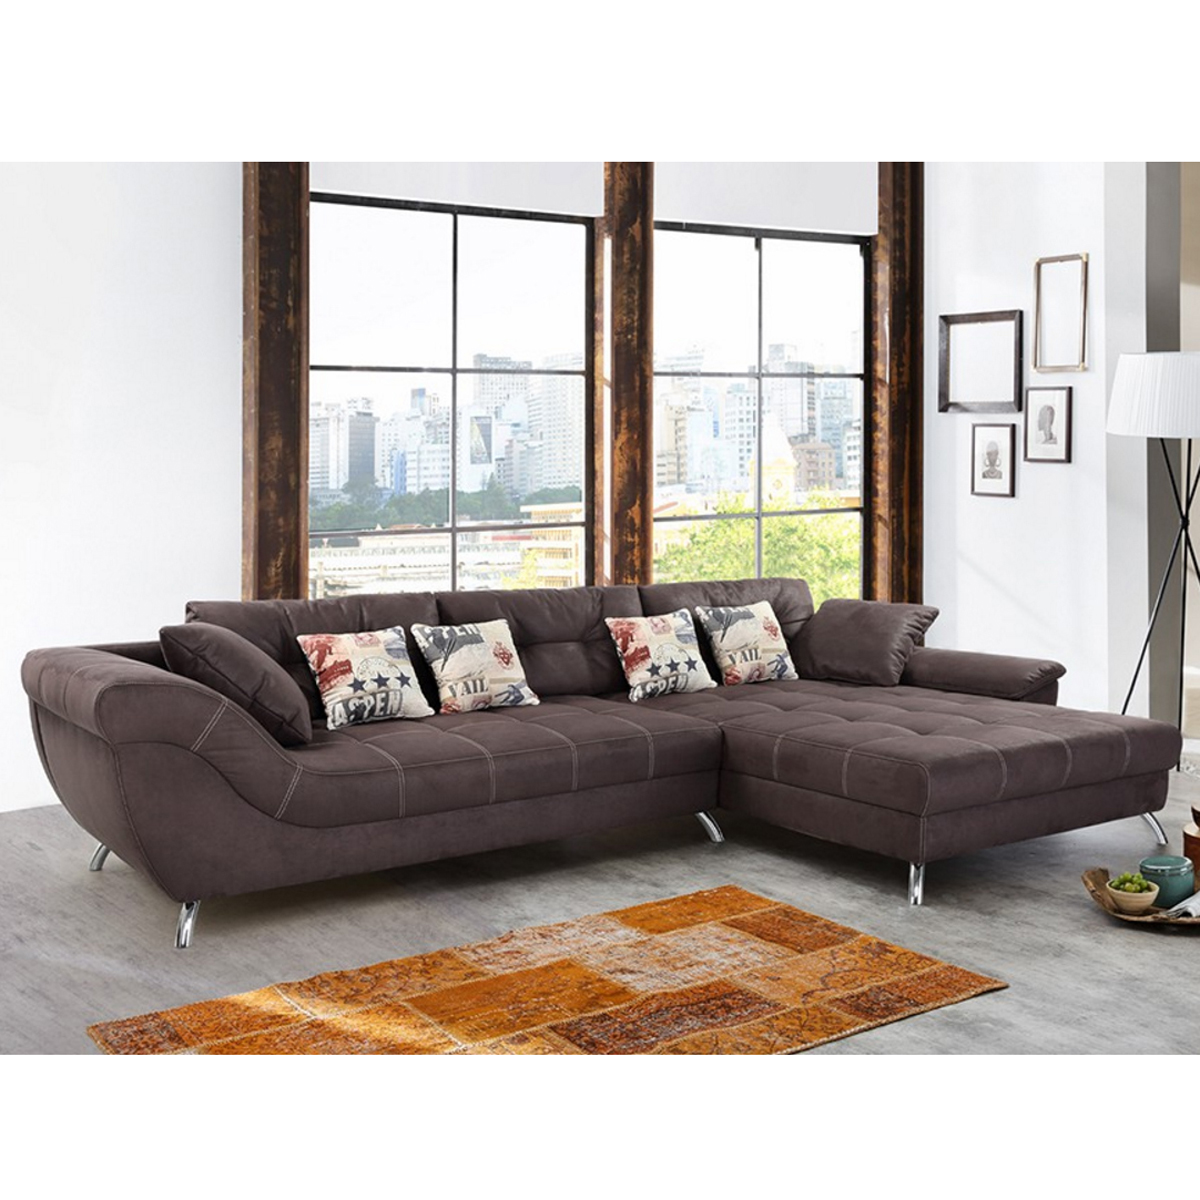 wohnlandschaft san francisco sofa ecksofa dunkelbraun mit kaltschaum polsterung ebay. Black Bedroom Furniture Sets. Home Design Ideas